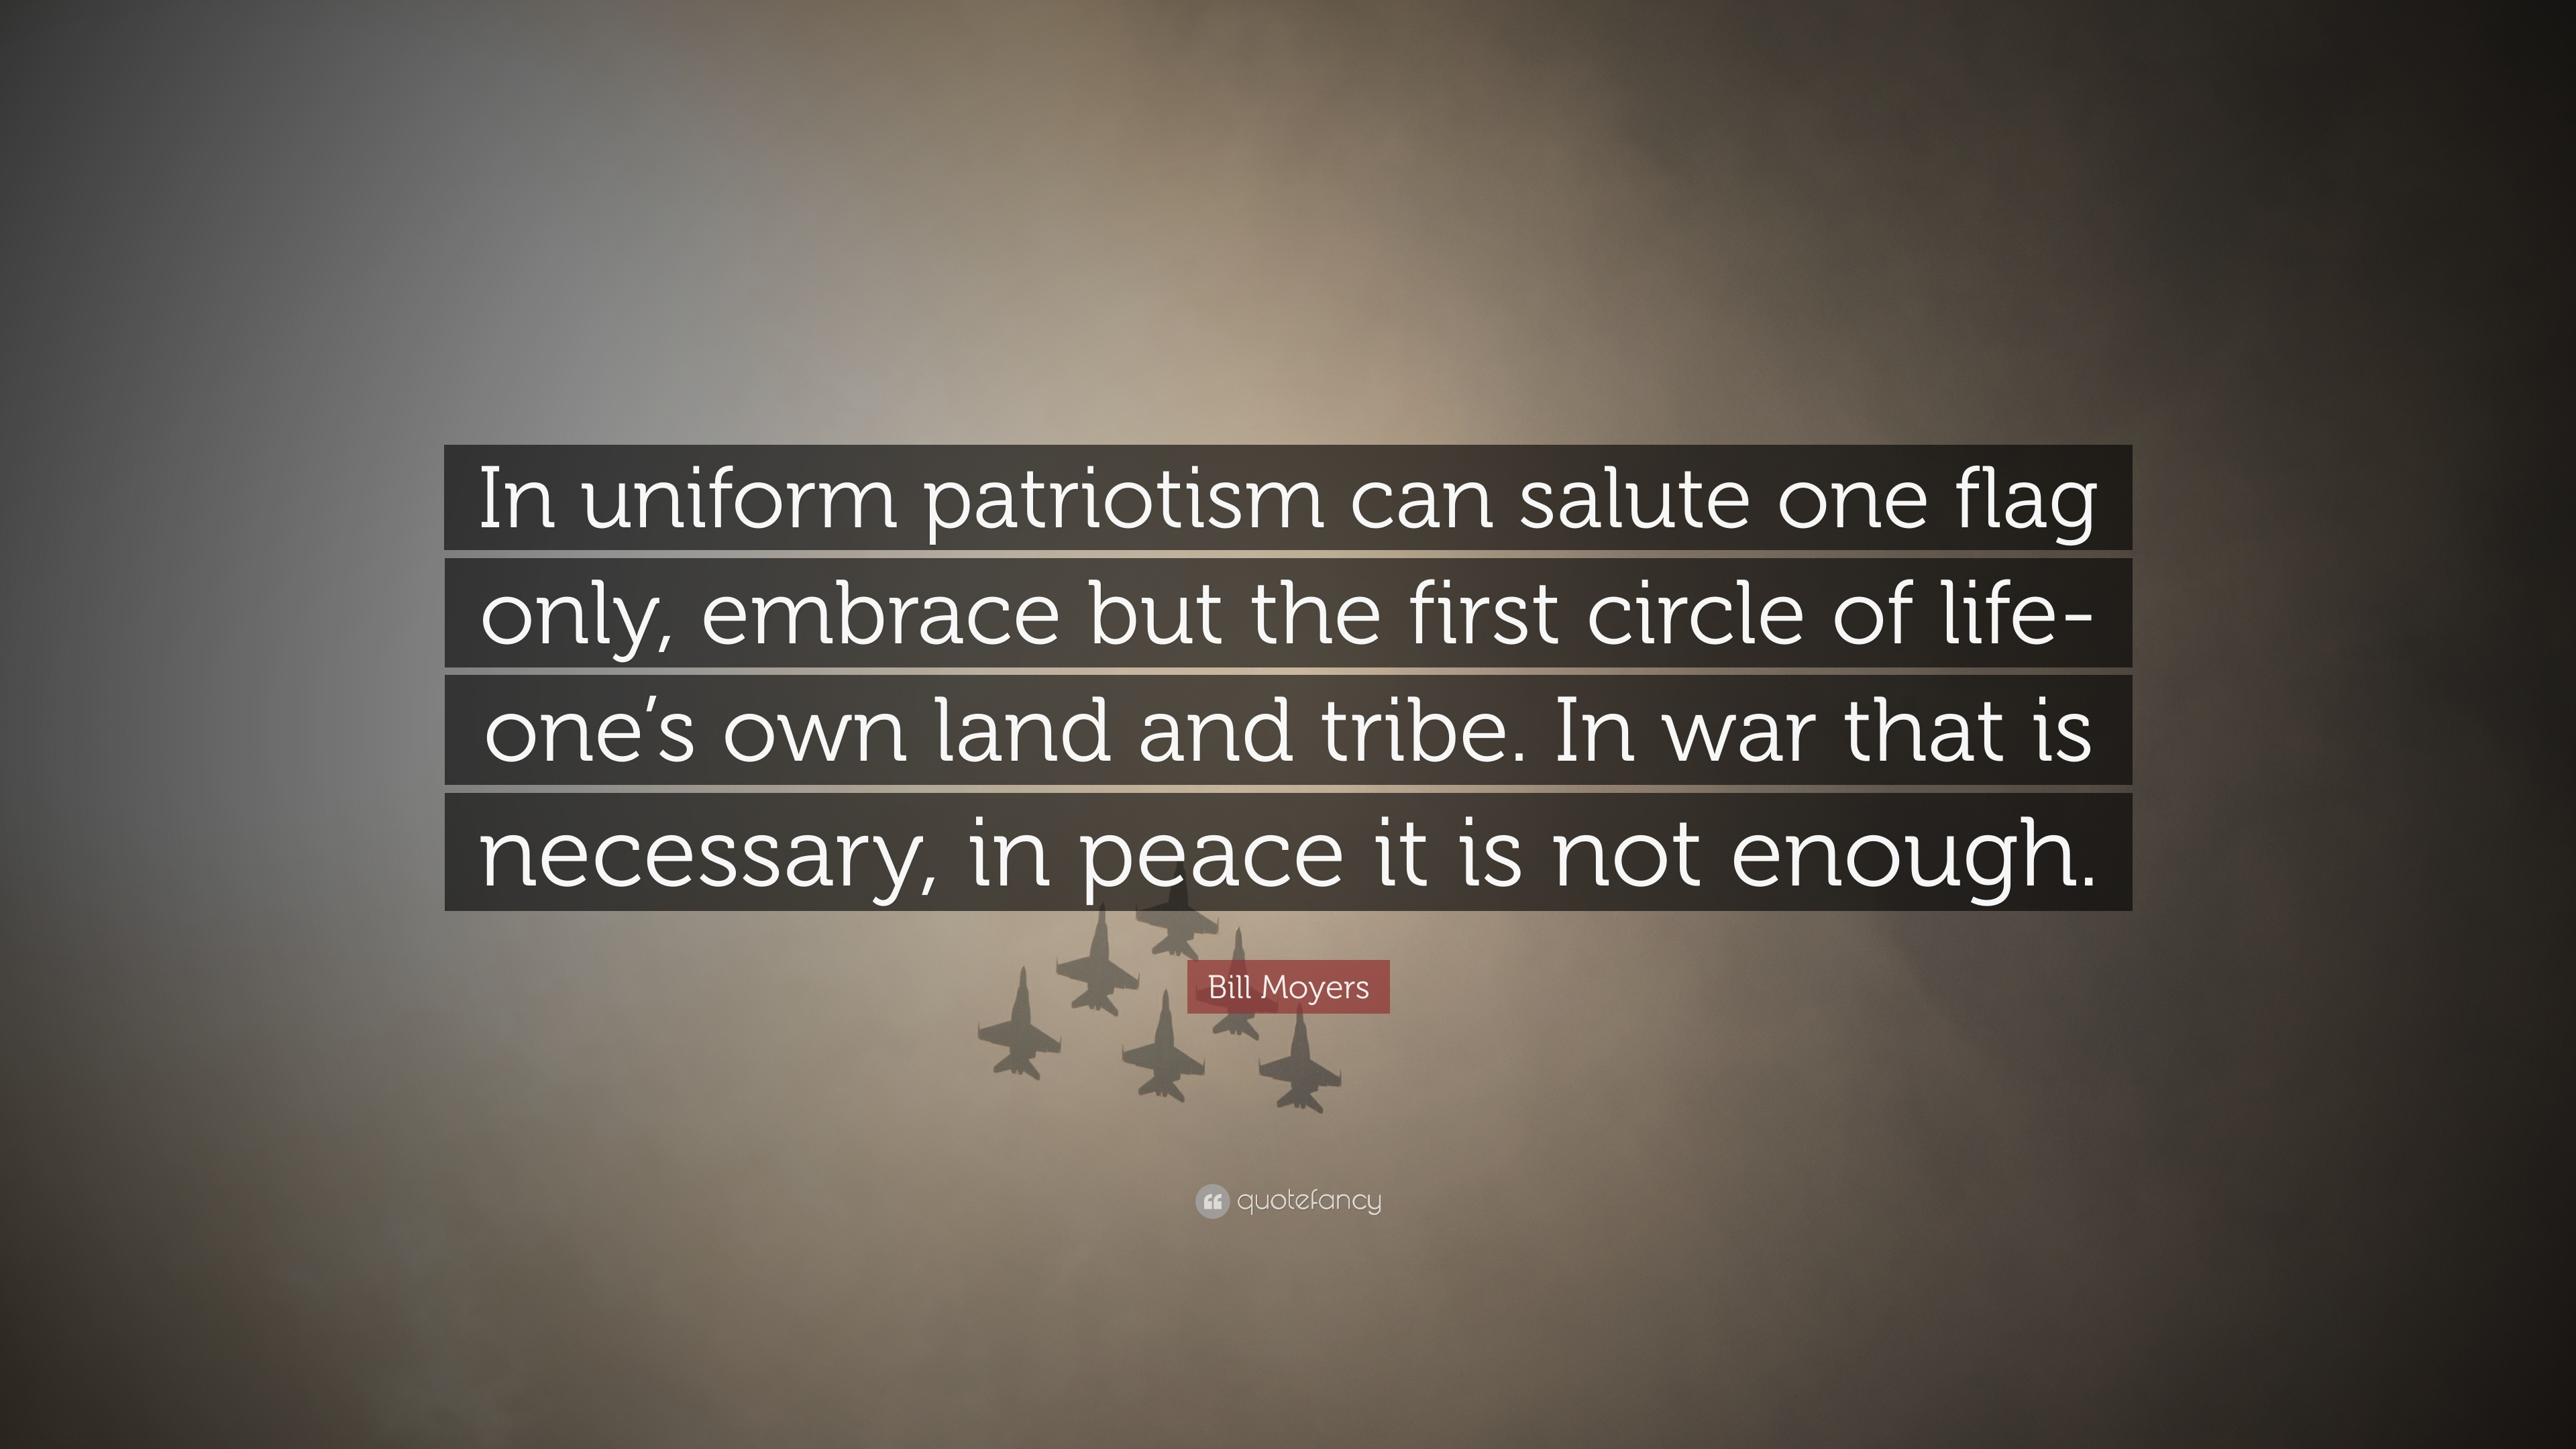 Is War Necessary to Attain Peace